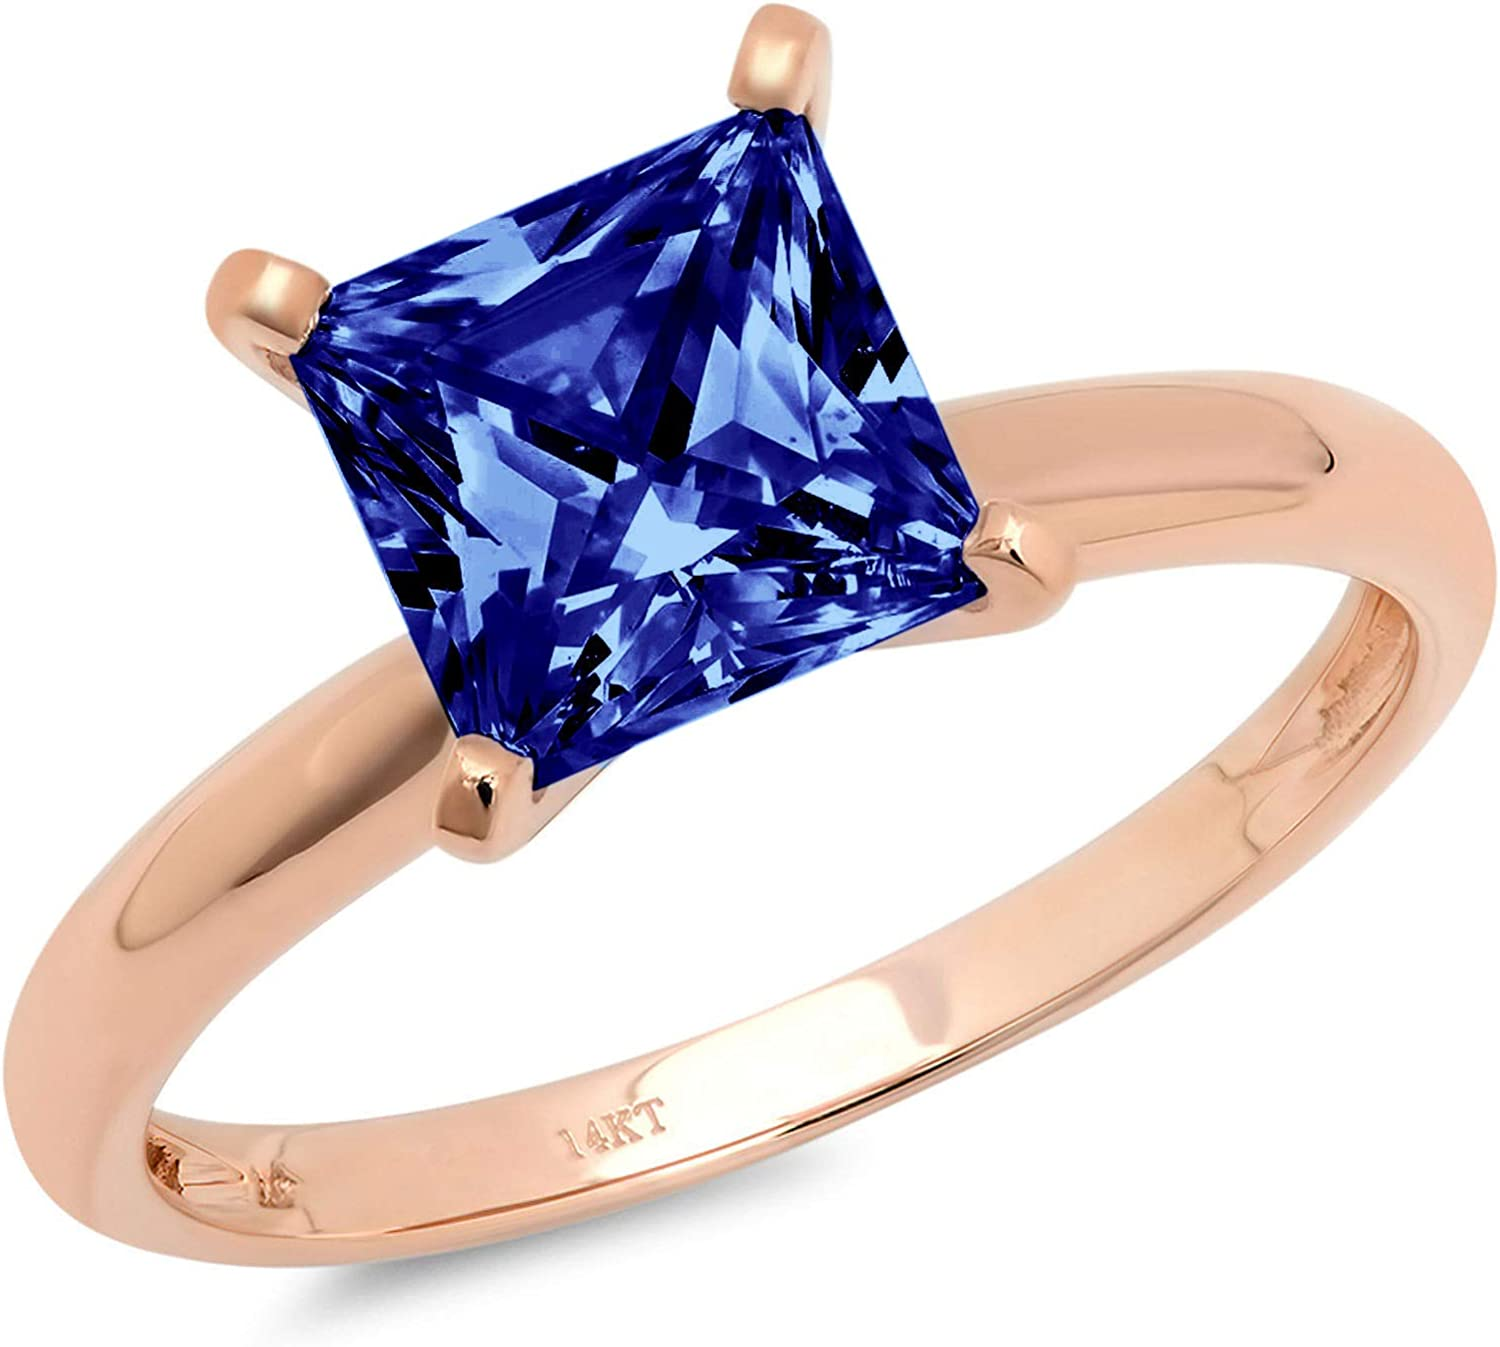 2.95 ct Brilliant Princess Cut Solitaire Flawless Simulated CZ Blue Tanzanite Ideal VVS1 4-Prong Engagement Wedding Bridal Promise Anniversary Designer Ring Solid 14k Rose Gold for Women